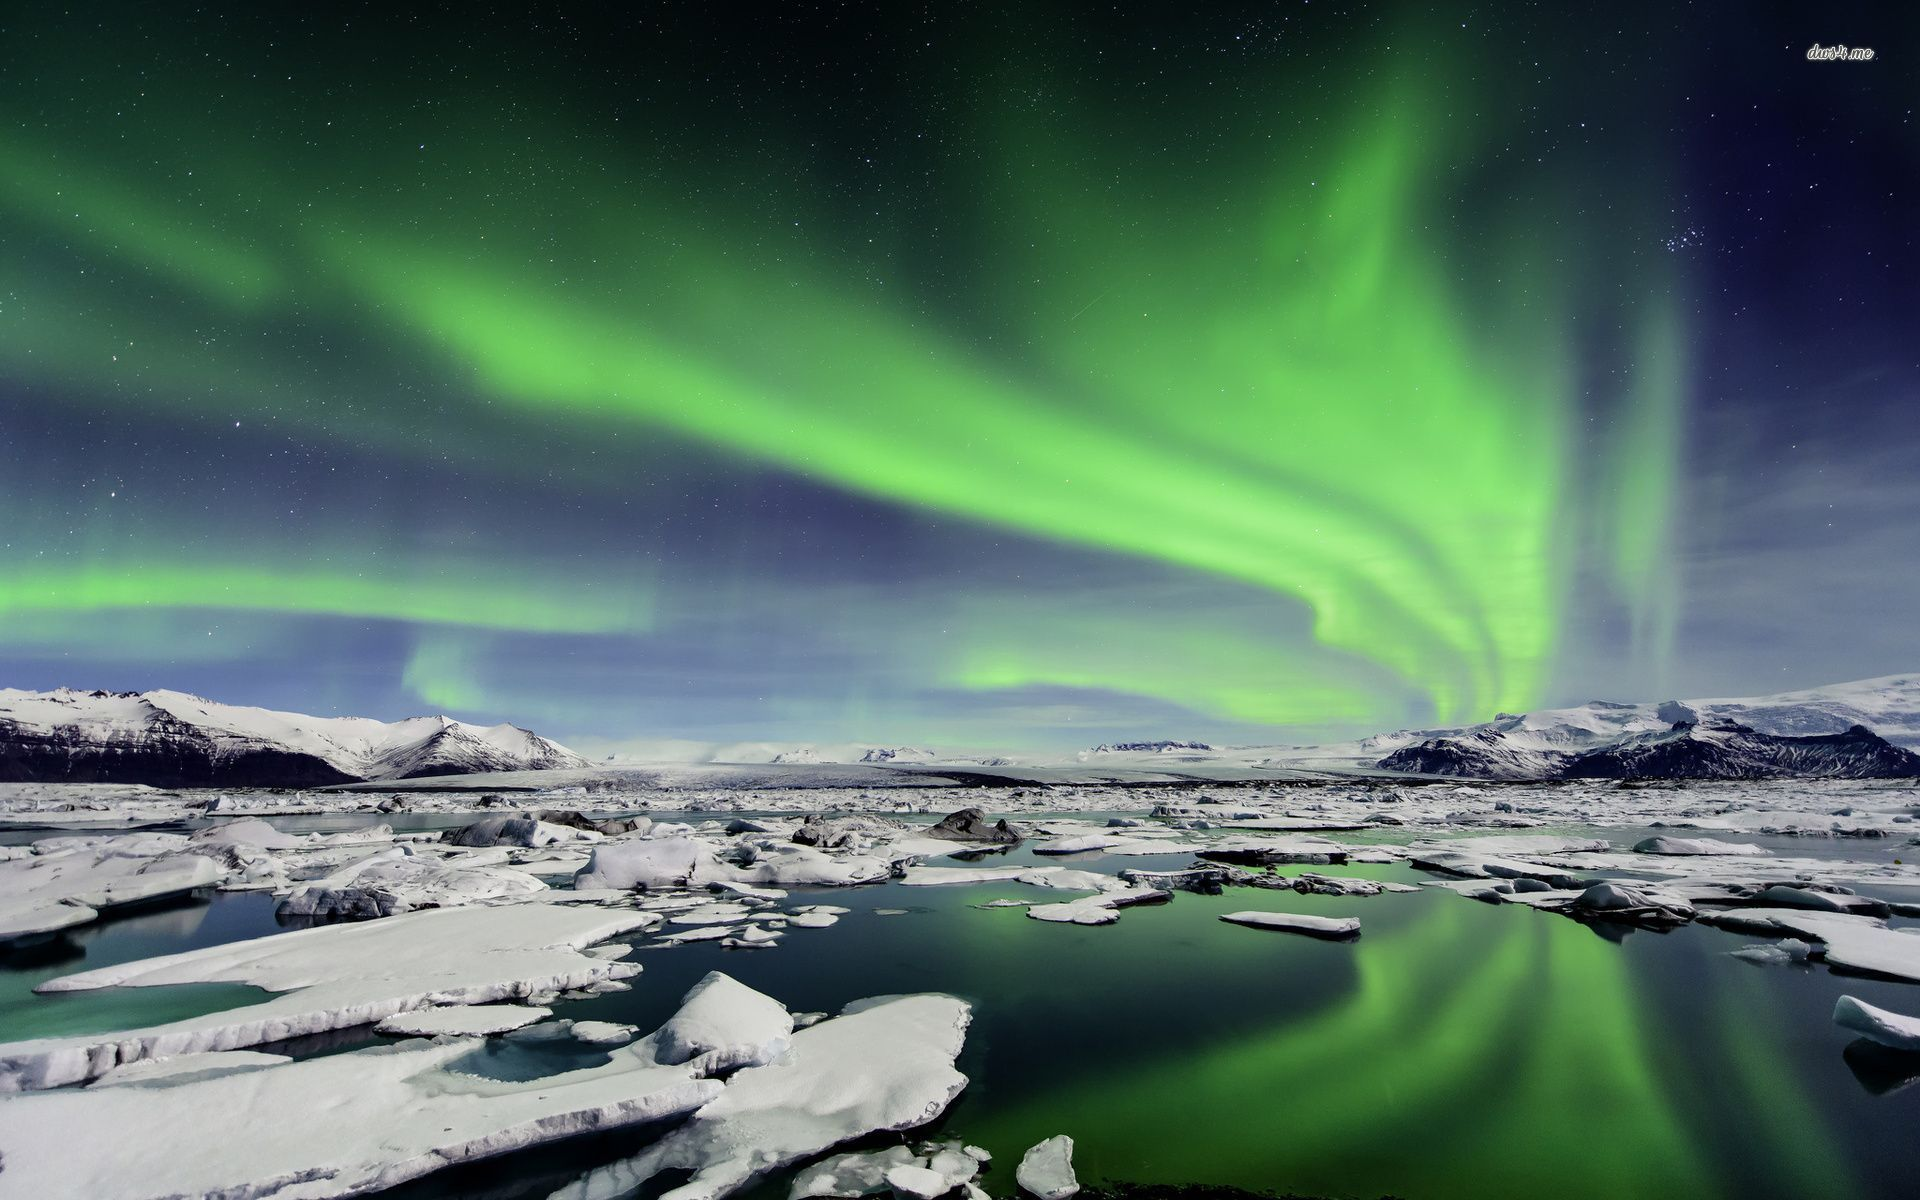 Northern Lights over Iceland wallpaper   Nature wallpapers   19099 1920x1200